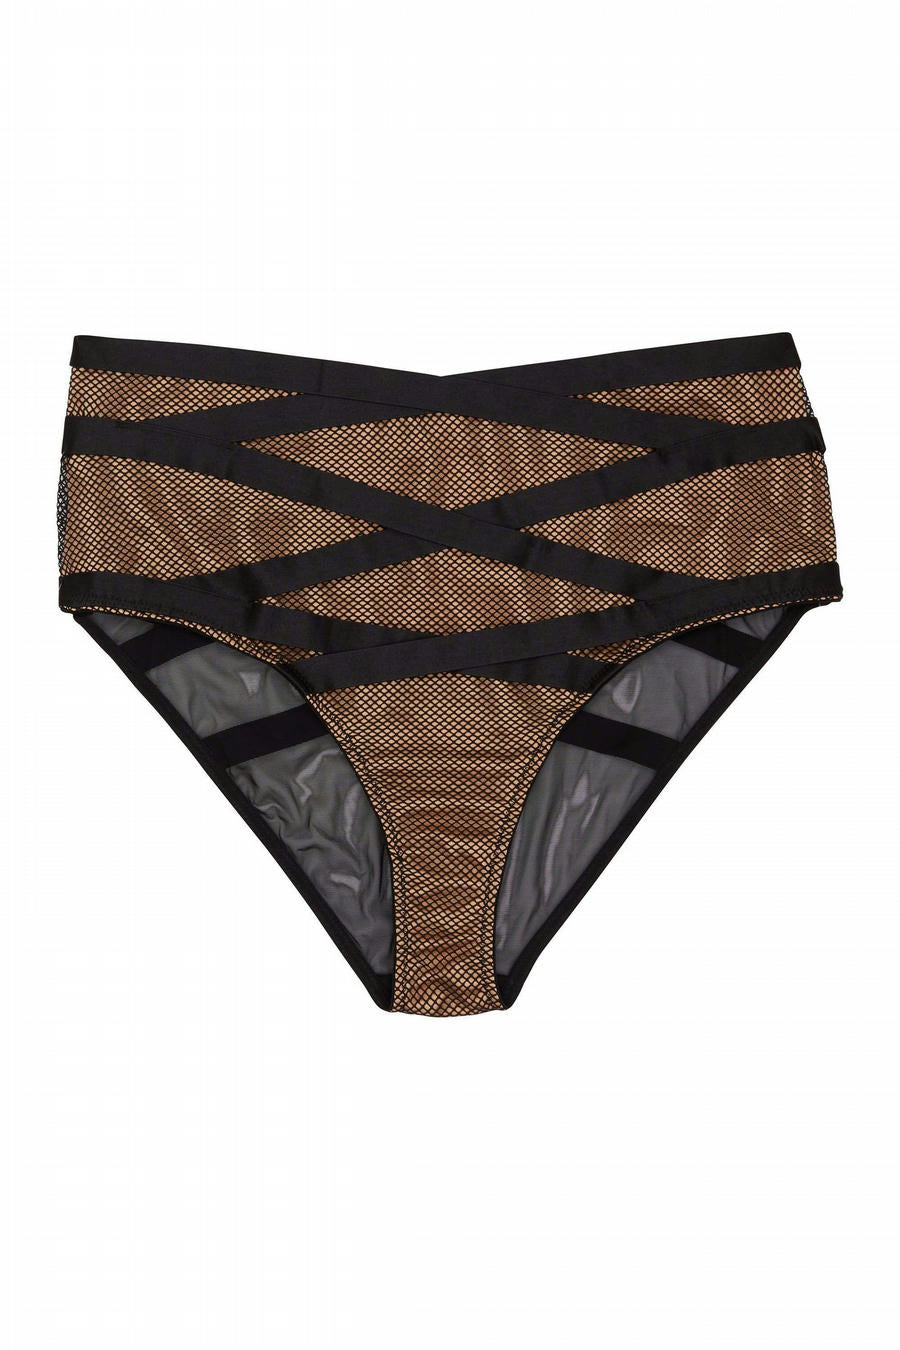 Gabi Fresh Brooklyn Strappy Back Brief - sizes 12-24